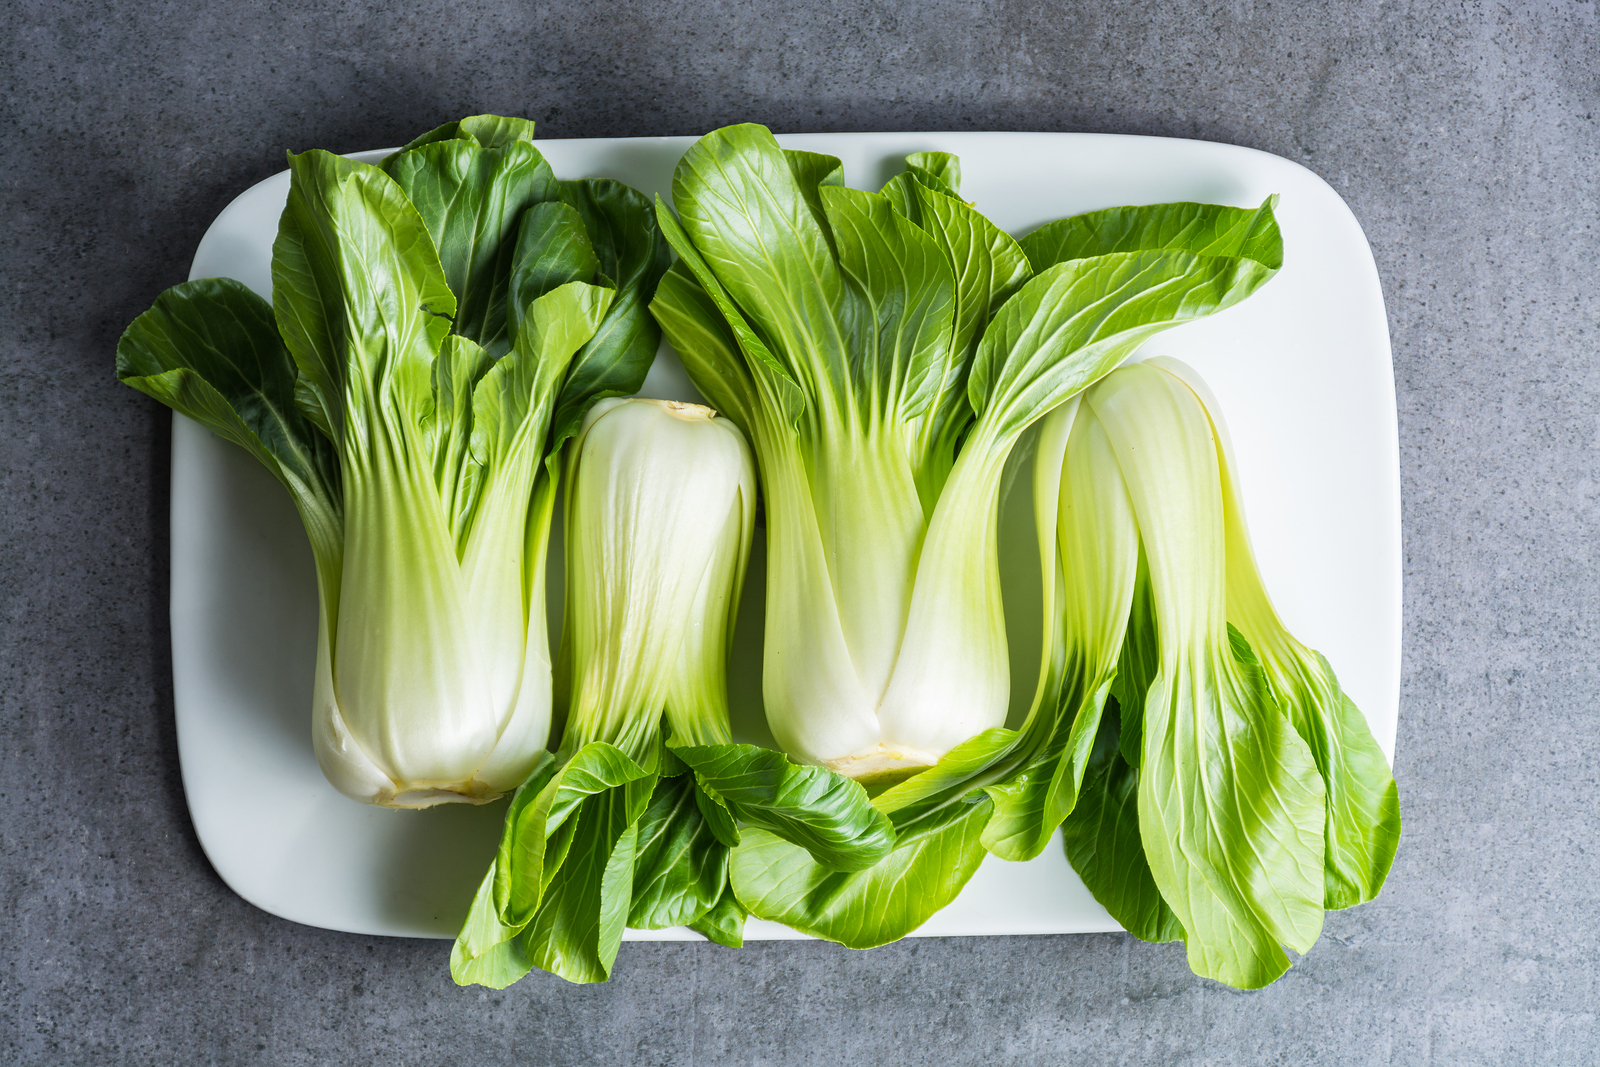 bigstock Fresh Raw Baby Bok Choy Or Pak 230711722